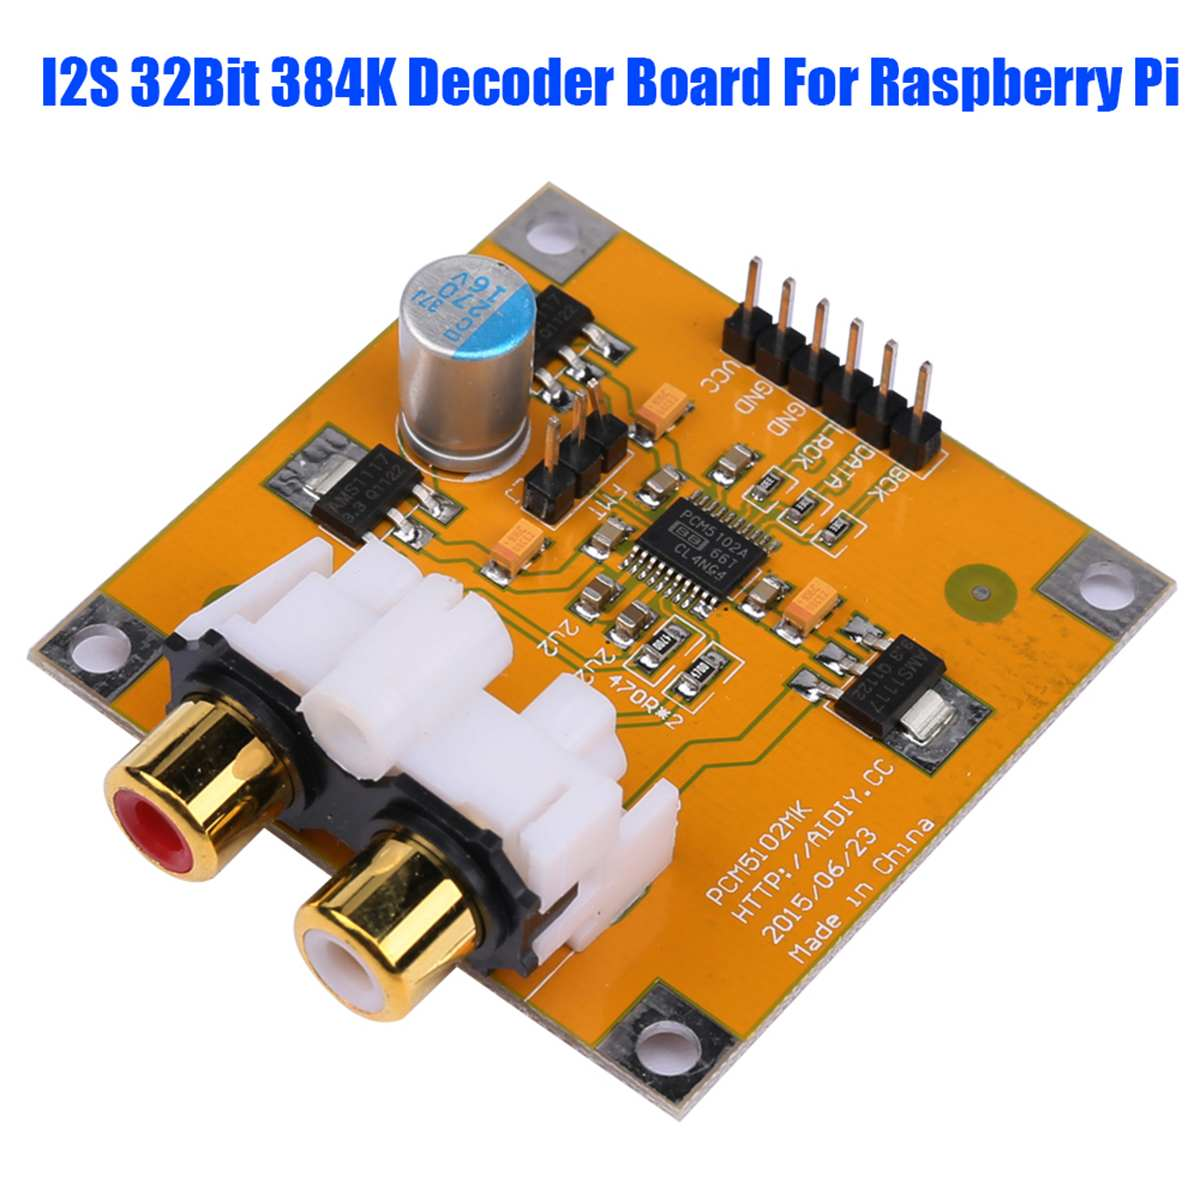 Accessories & Parts Cliate 1pc Dac Decoder Board M5102/pcm5102a I2s 32bit 384k For Raspberry Pi Red Core Player Back To Search Resultsconsumer Electronics